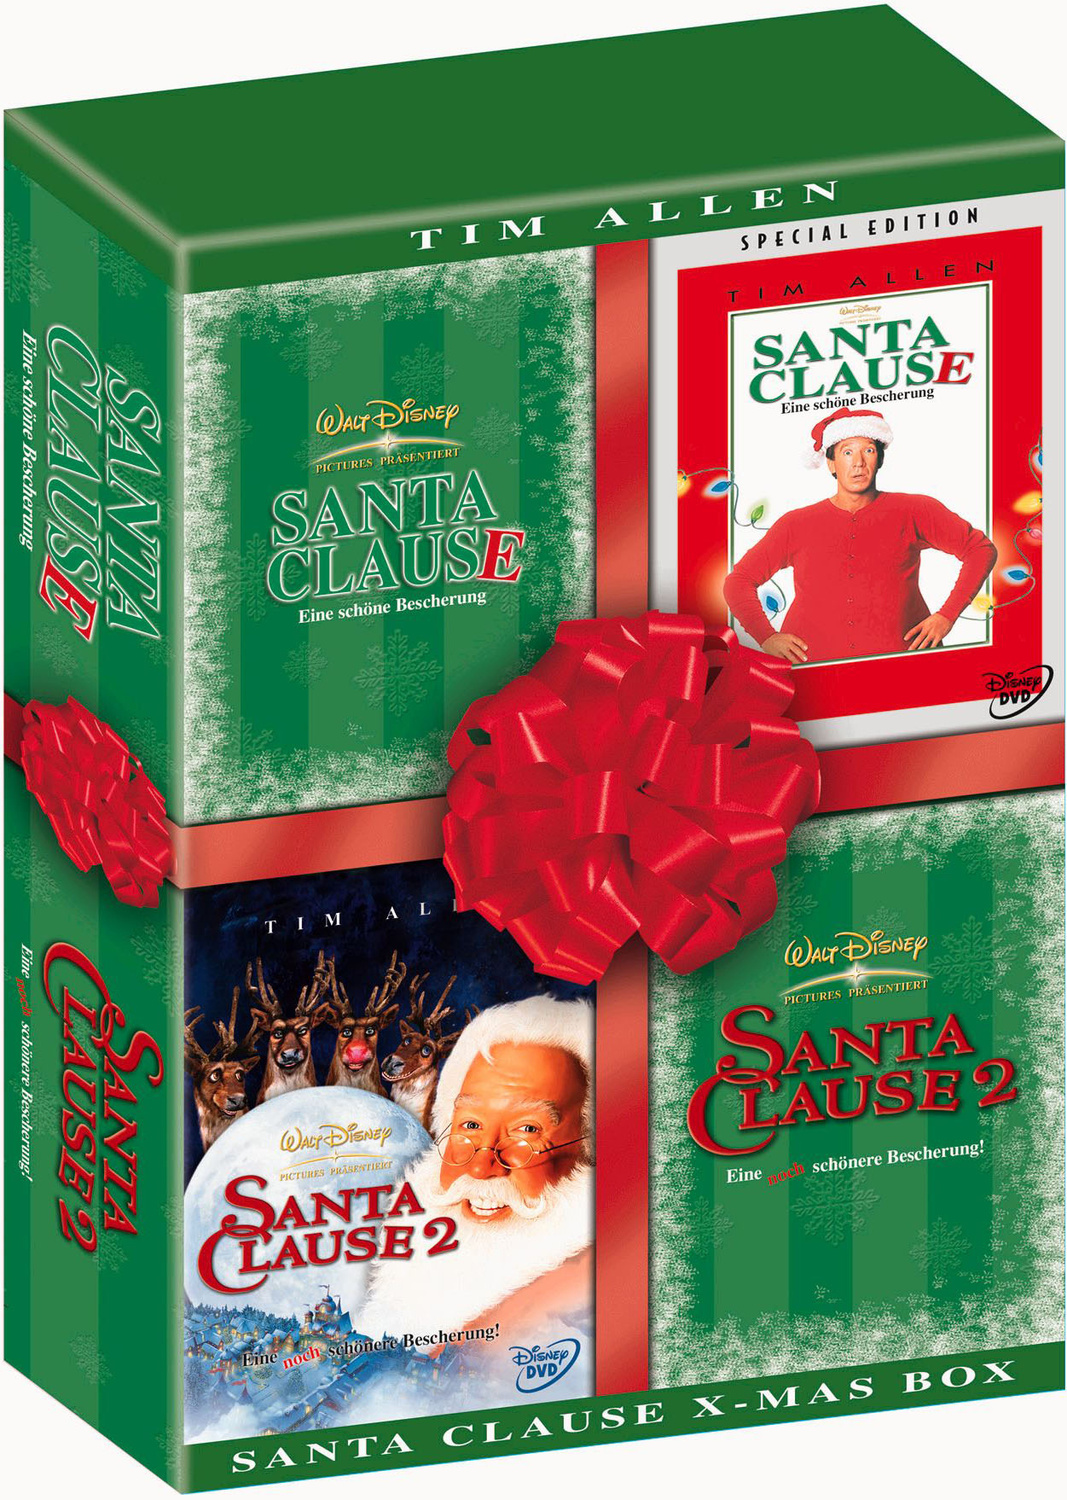 Santa Clause 1 + 2 Box Set